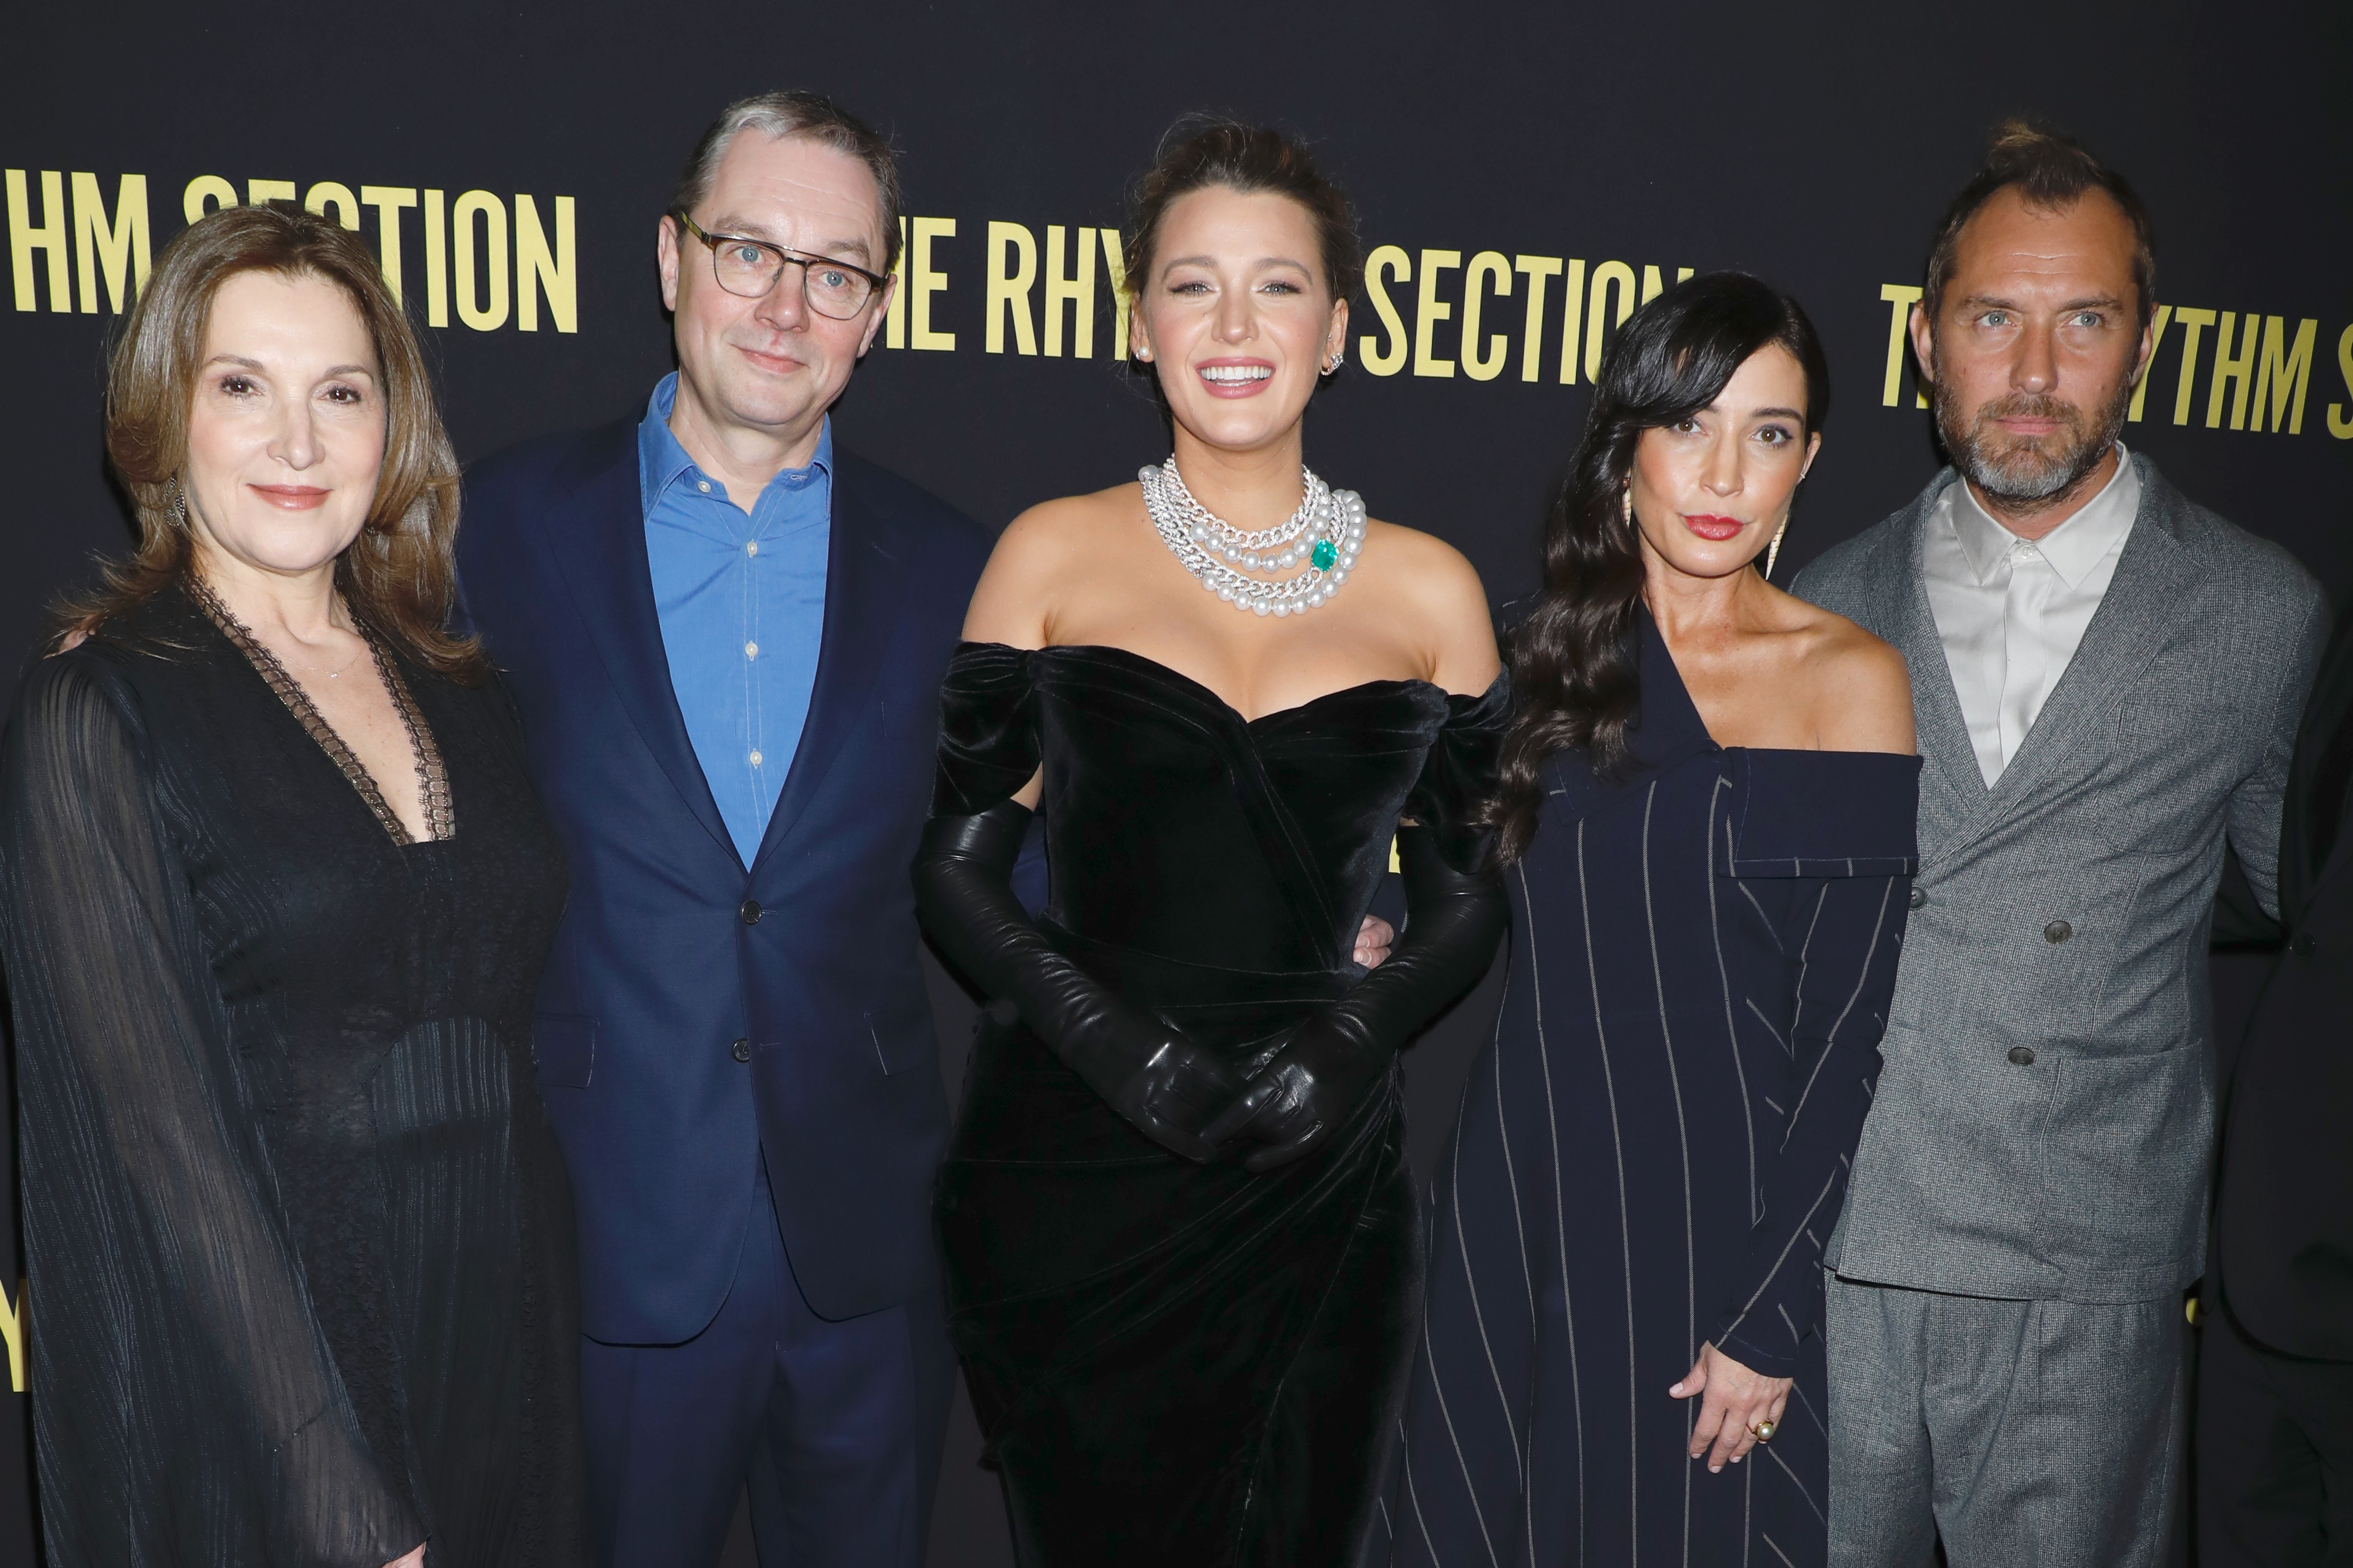 Barbara Broccoli, Mark Burnell, Blake Lively, Reed Morano and Jude Law'The Rhythm Section' film premiere, Arrivals, Brooklyn Academy of Music, New York, USA - 27 Jan 2020